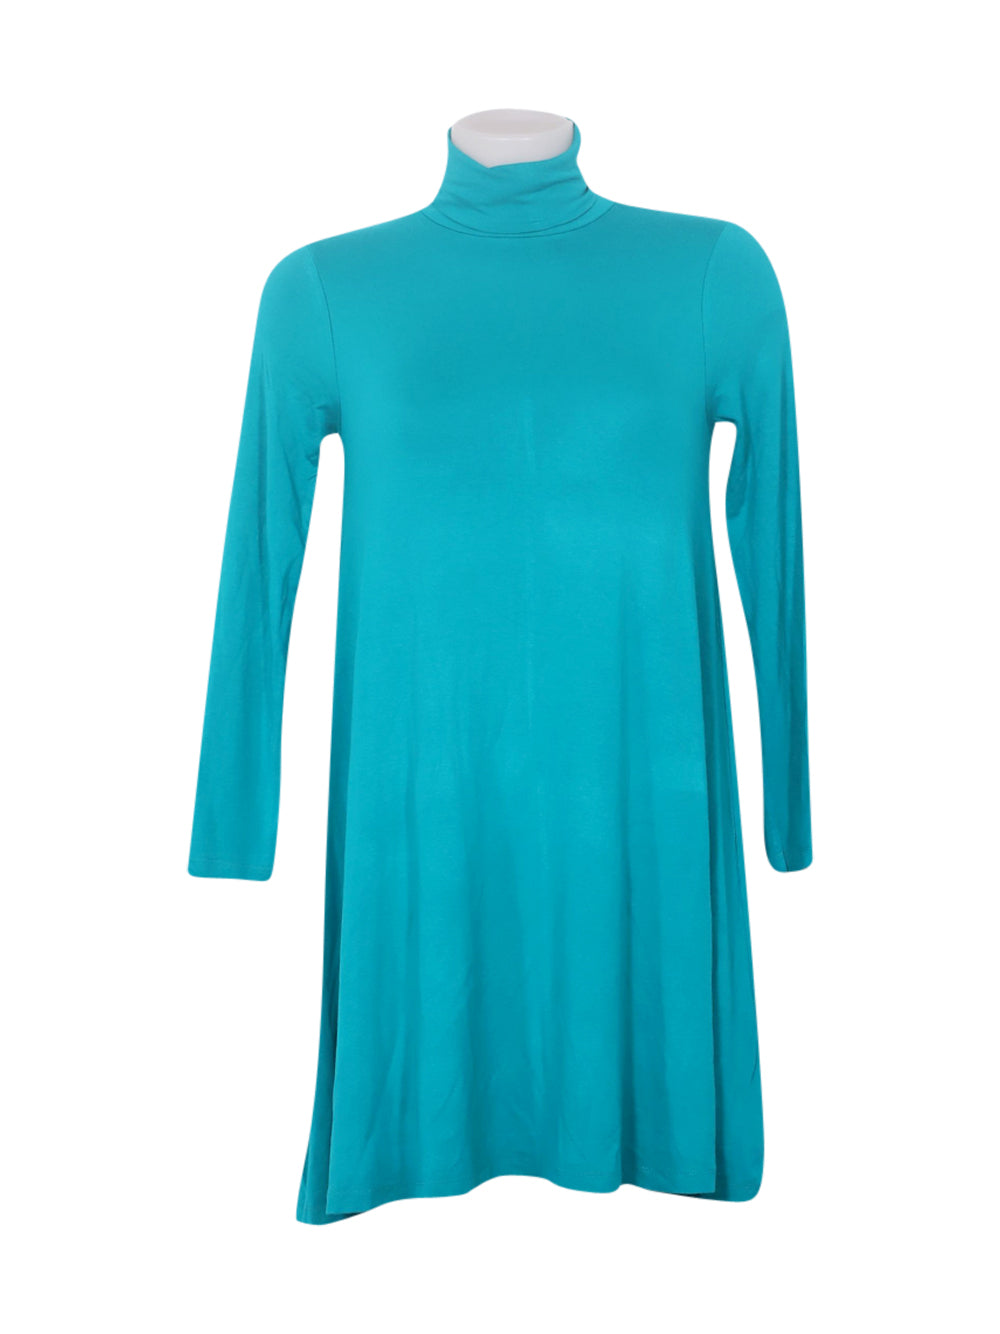 Front photo of Preloved Asos Light-blue Woman's dress - size 8/S